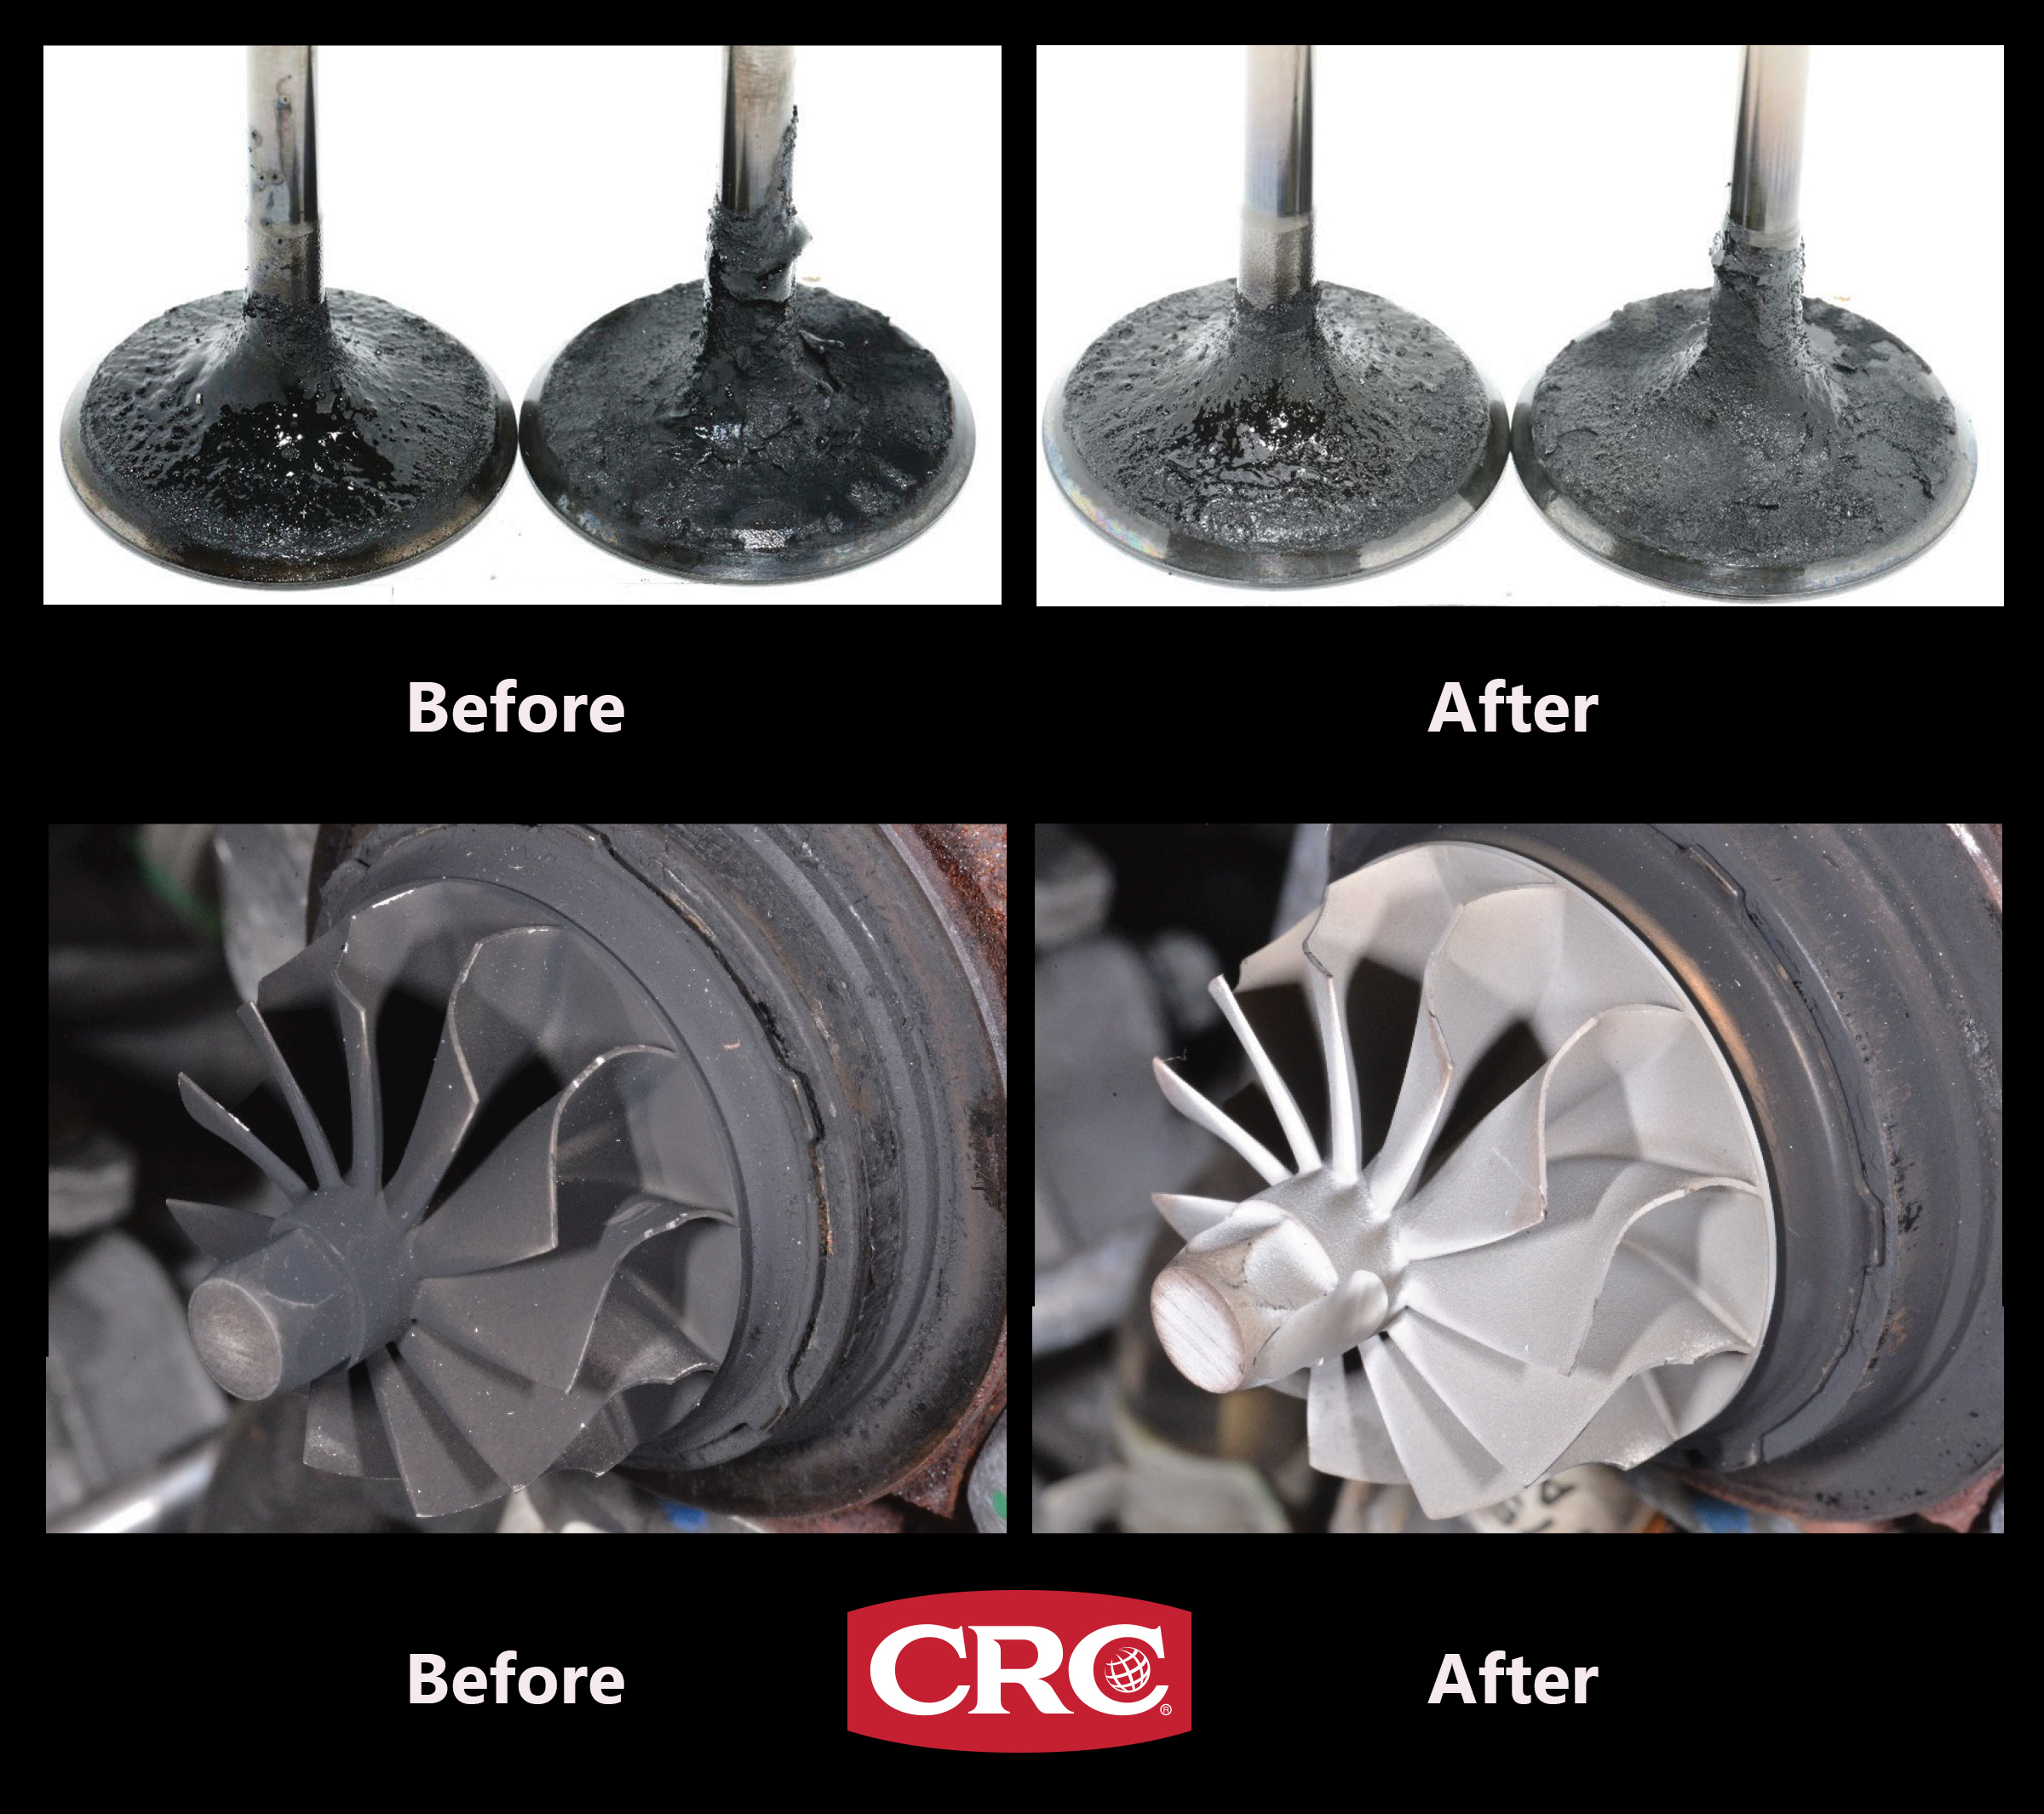 CRC Industries' GDI IVD Intake Valve & Turbo Cleaner to